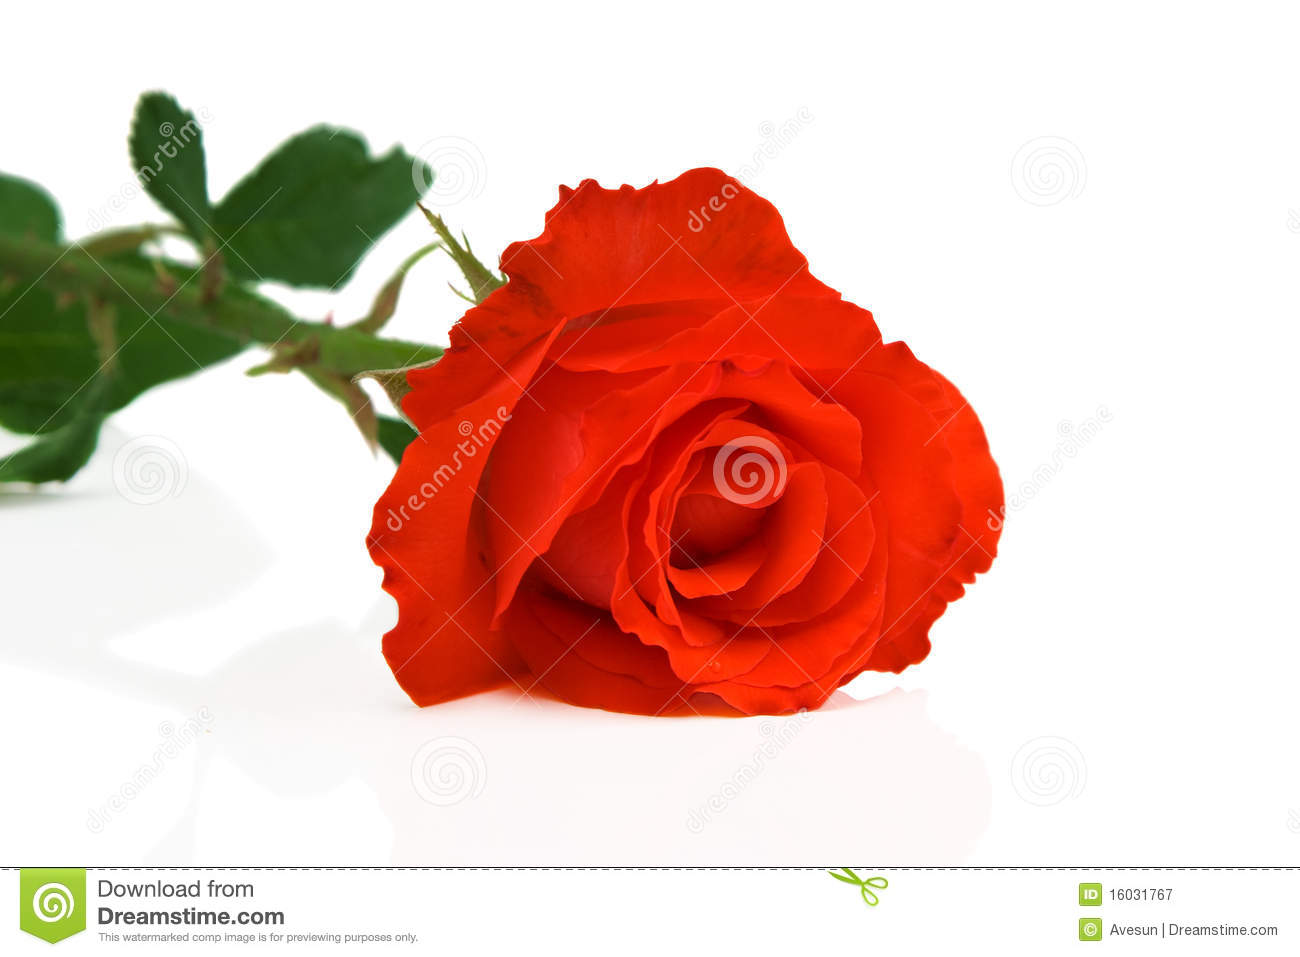 Beautiful Single Red Rose Flower Isolated Royalty Free: Abstract Photo Of Rose Flower Royalty Free Stock